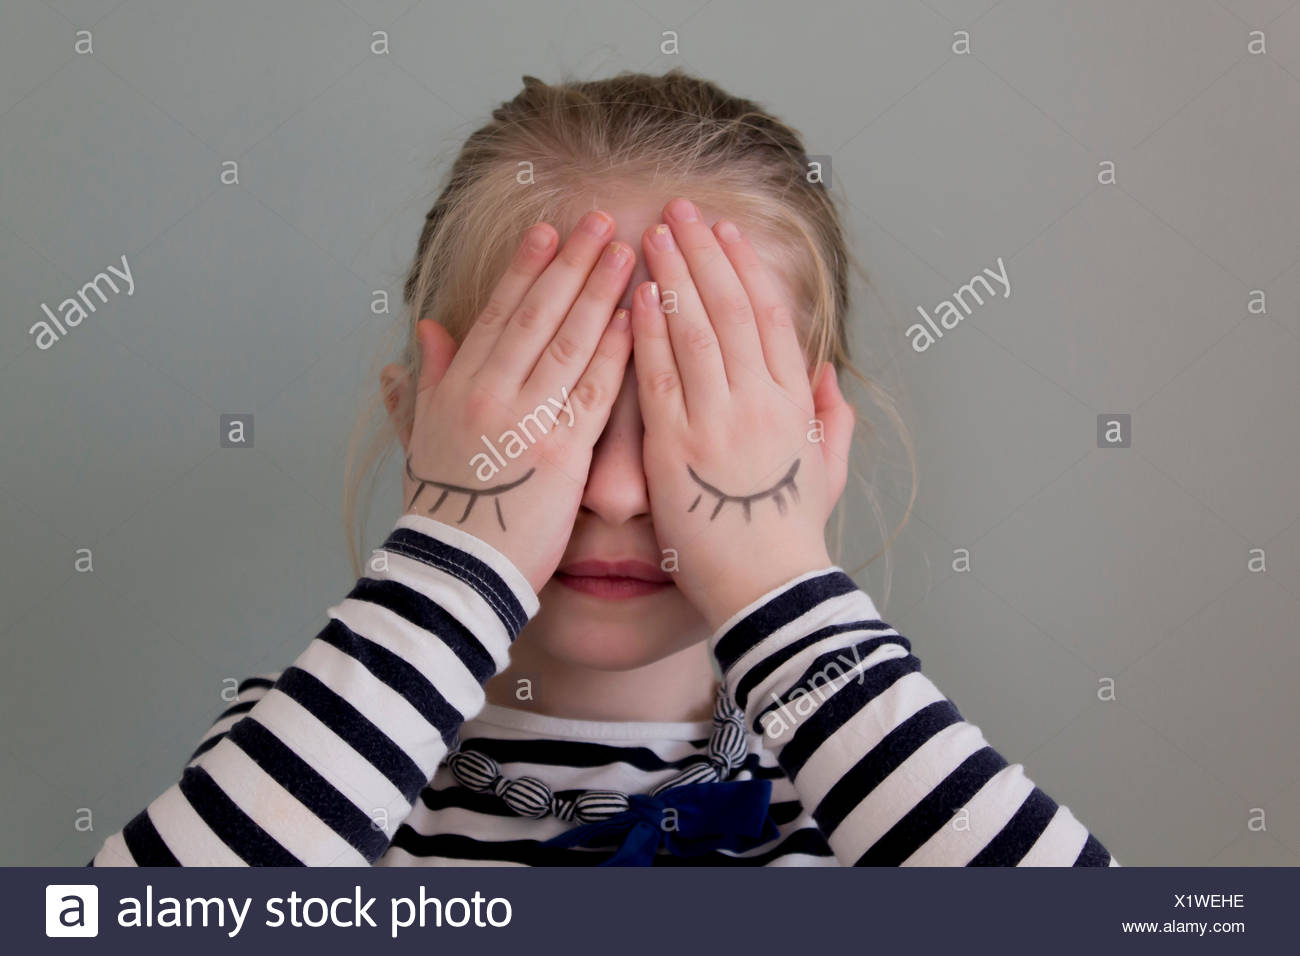 Girl covering her eyes with hands that have eyes drawn on them - Stock Image